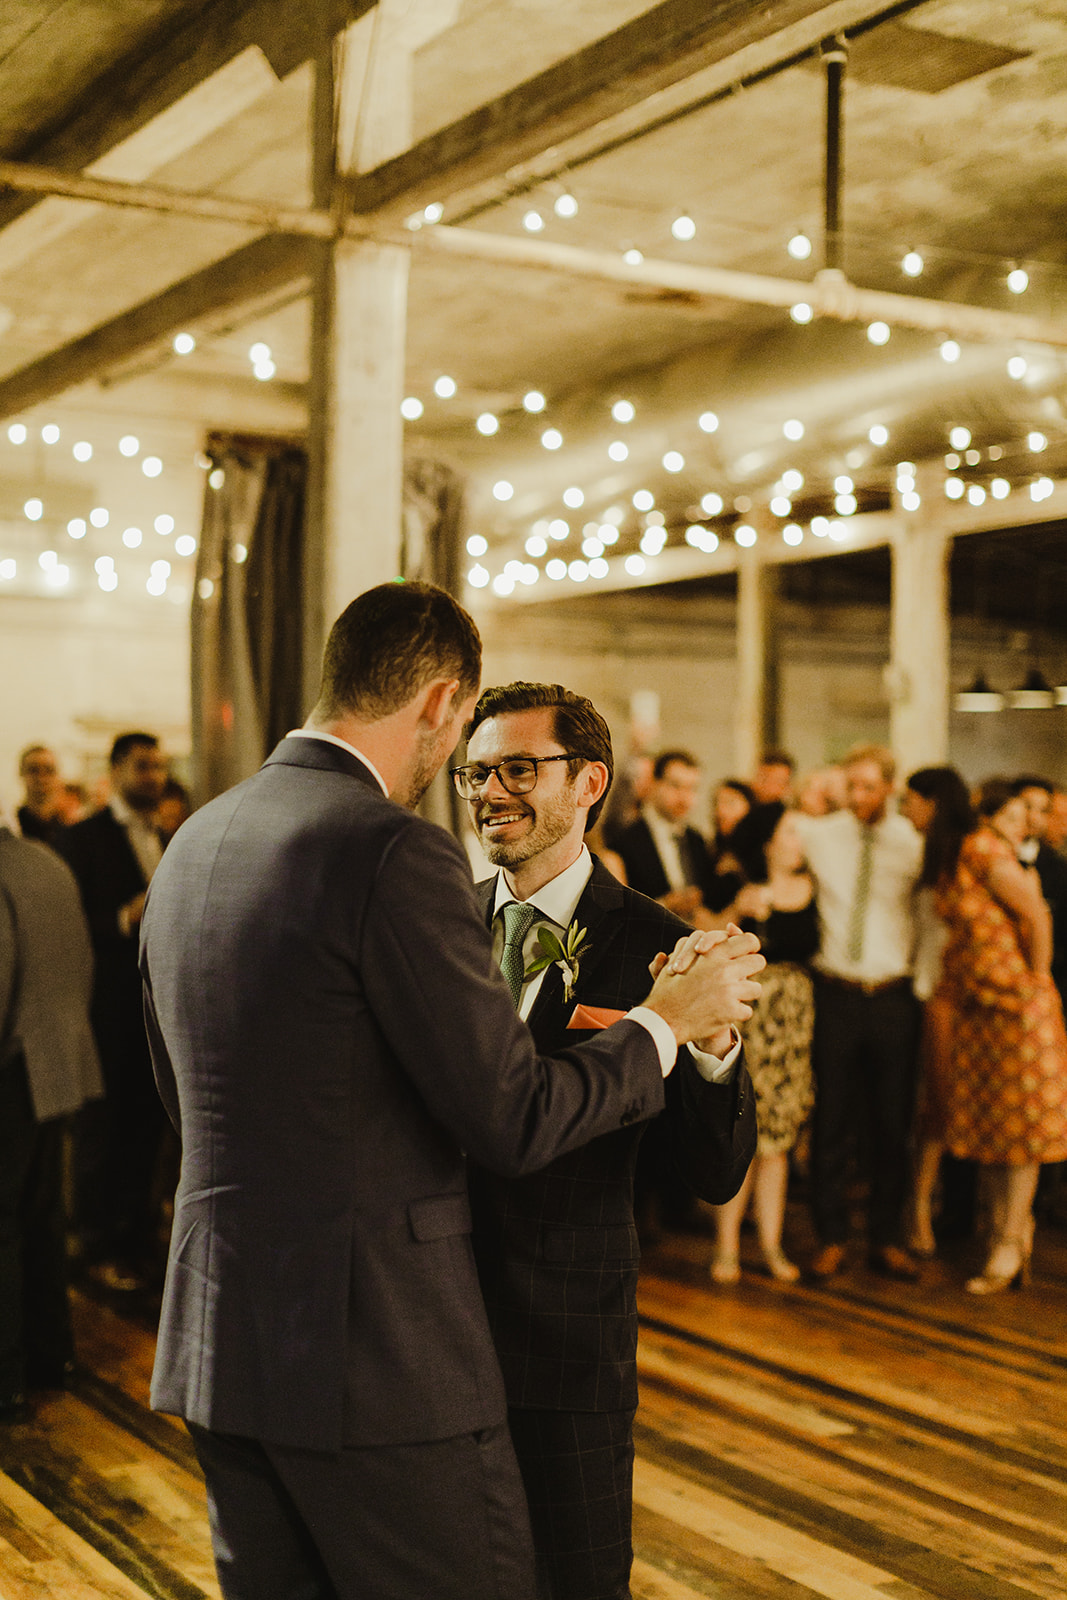 Grooms sharing their first dance